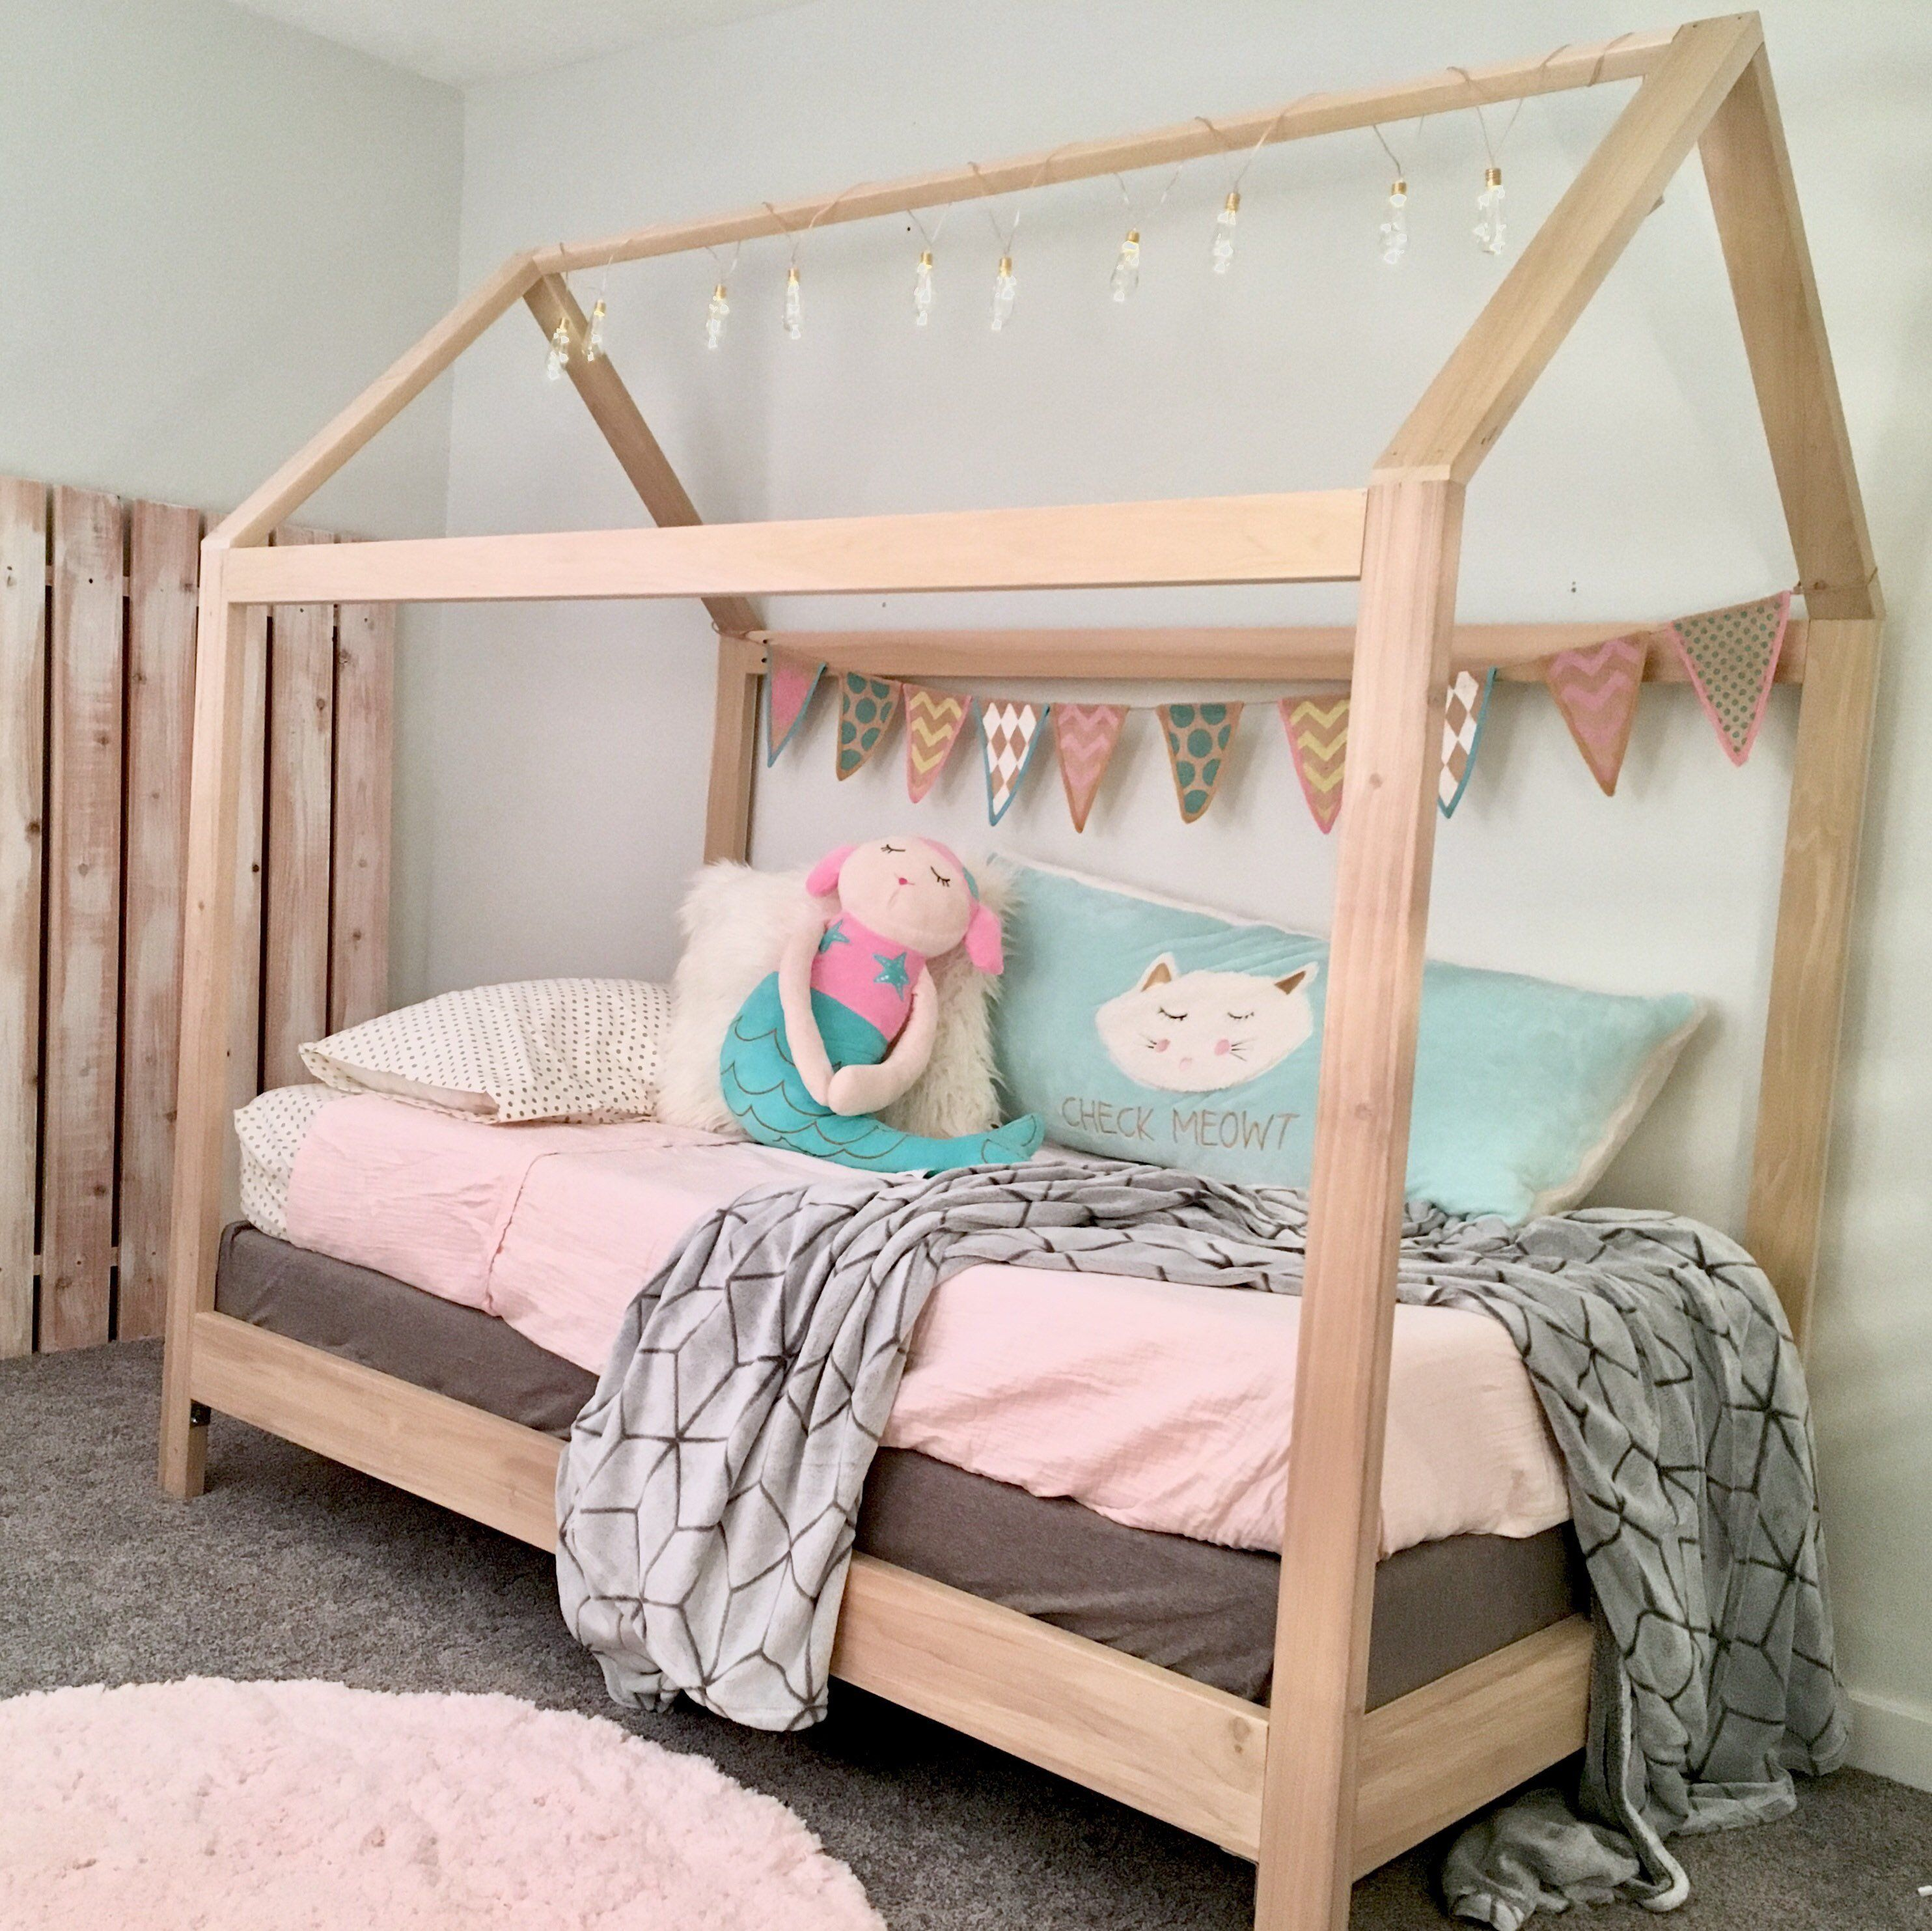 ThePinnedPurveyor Twin bed frame, Toddler house bed, Diy